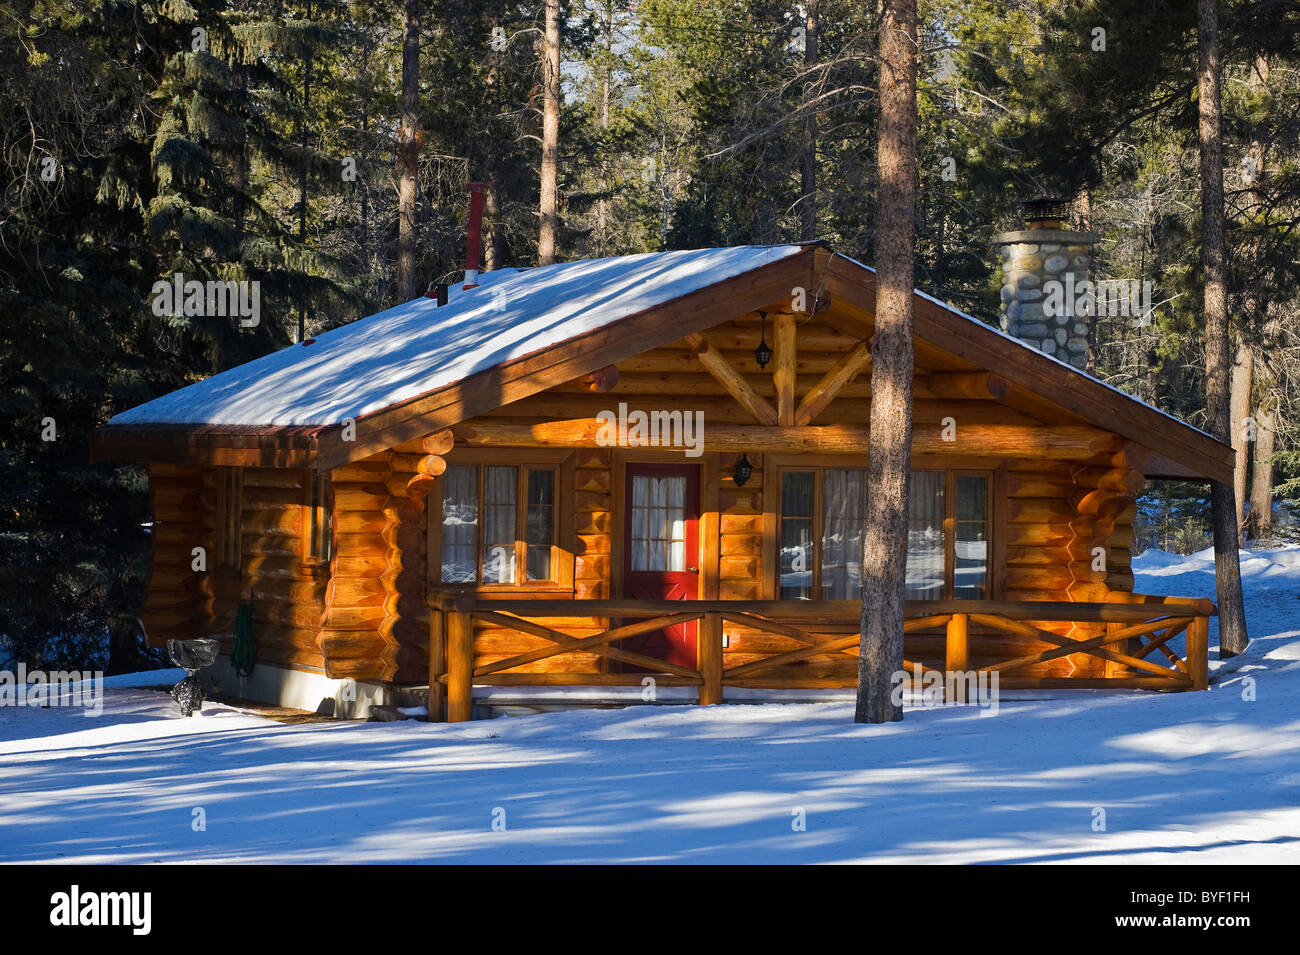 A winter scenic of a log cabin - Stock Image